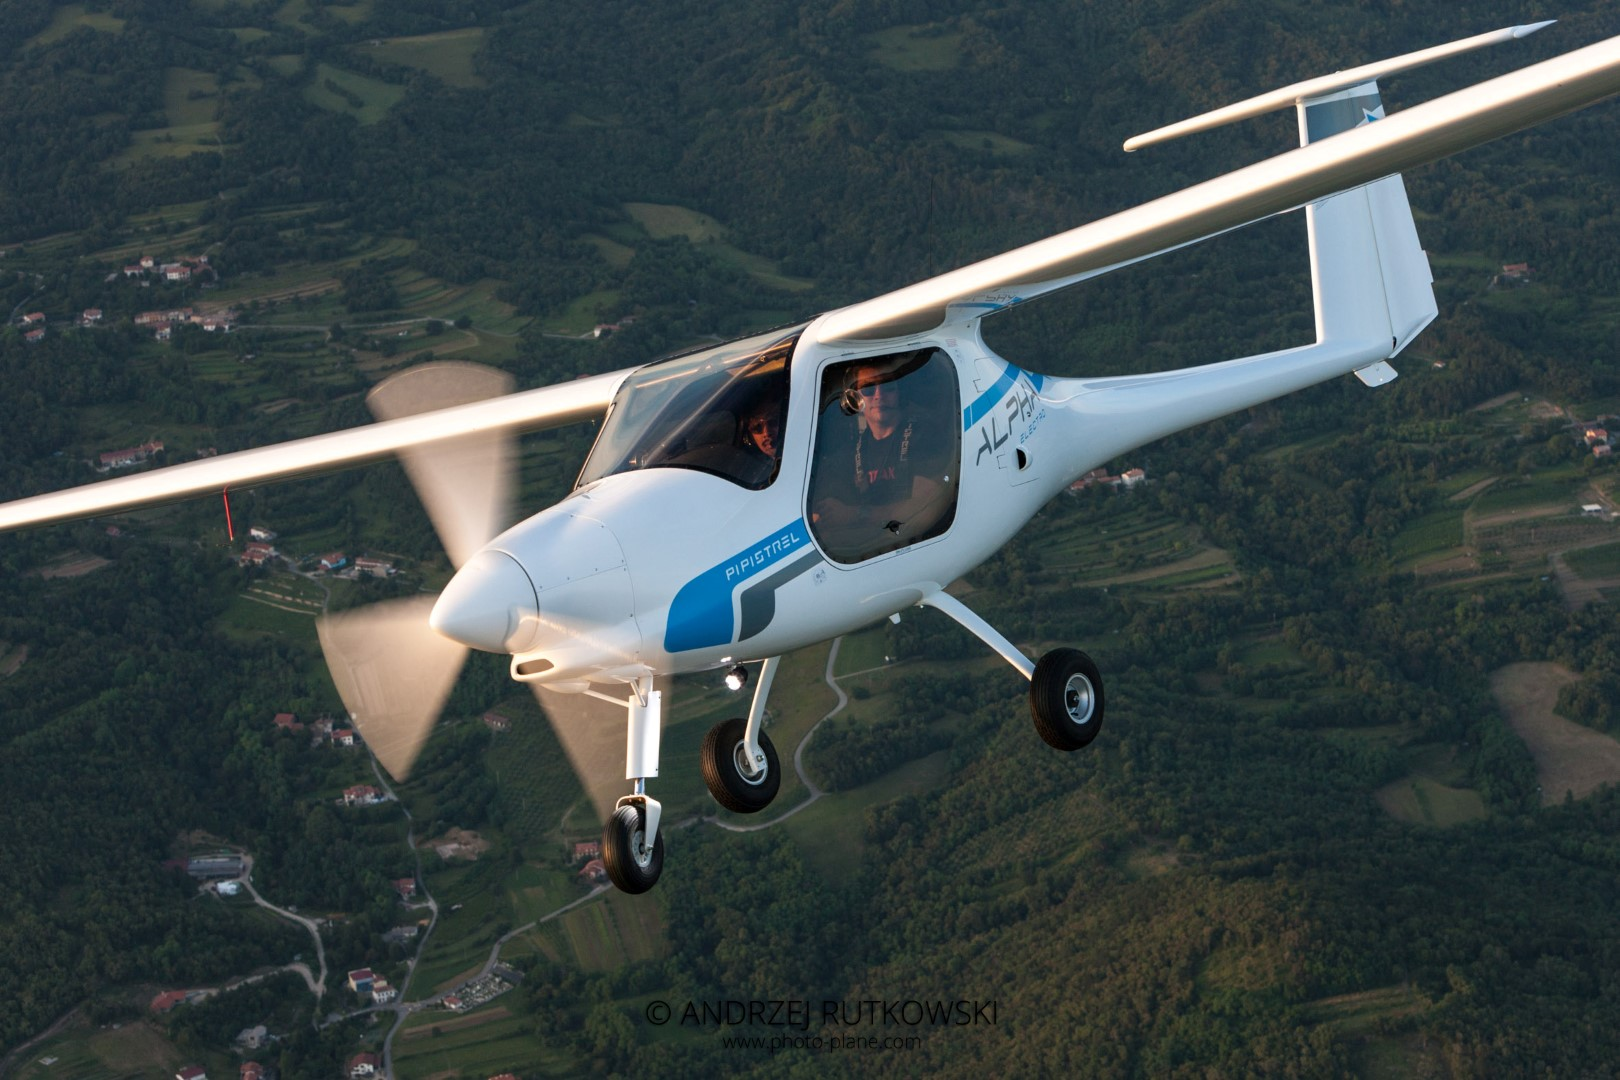 Pipistrel-Alpha-Electro-aircraft-zero-emissions-electric-aircraft-LSA-approved-for-training-operations-and-flight-schools-26